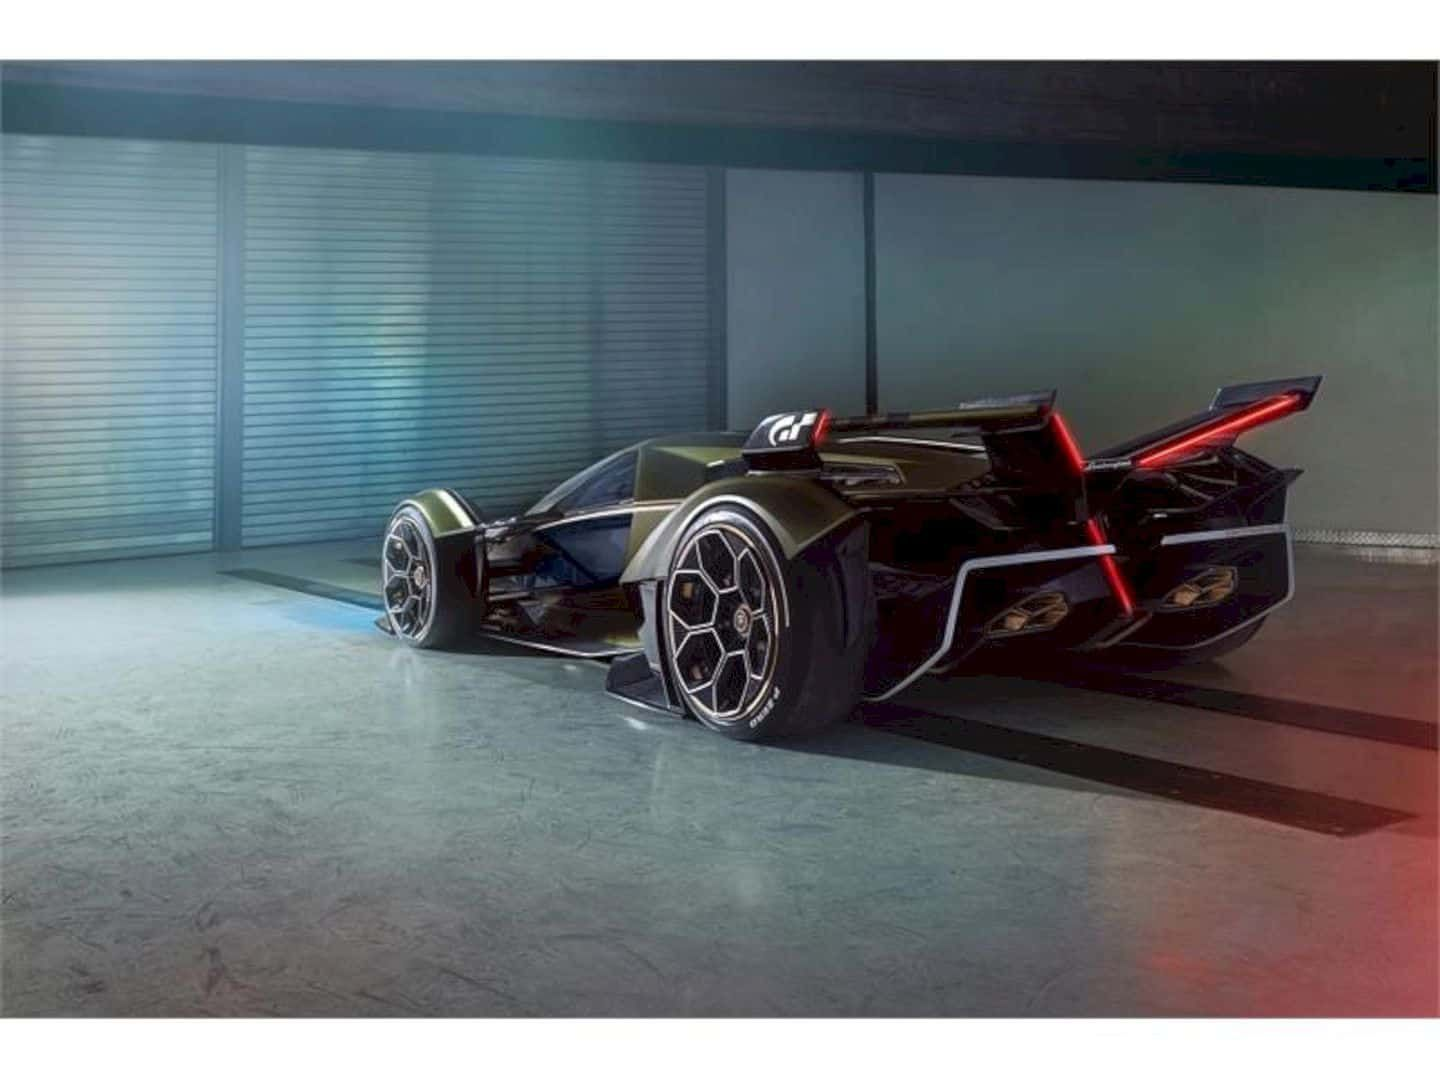 A new concept car is presented by Automobili Lamborghini called Lamborghini Lambo V12 Vision Gran Turismo. It is a highly visionary concept 'fun to drive' within the iconic racing game Gran Turismo Sport digital environment for Sony PlayStation 4. This stylish concept will be virtually available from spring 2020.